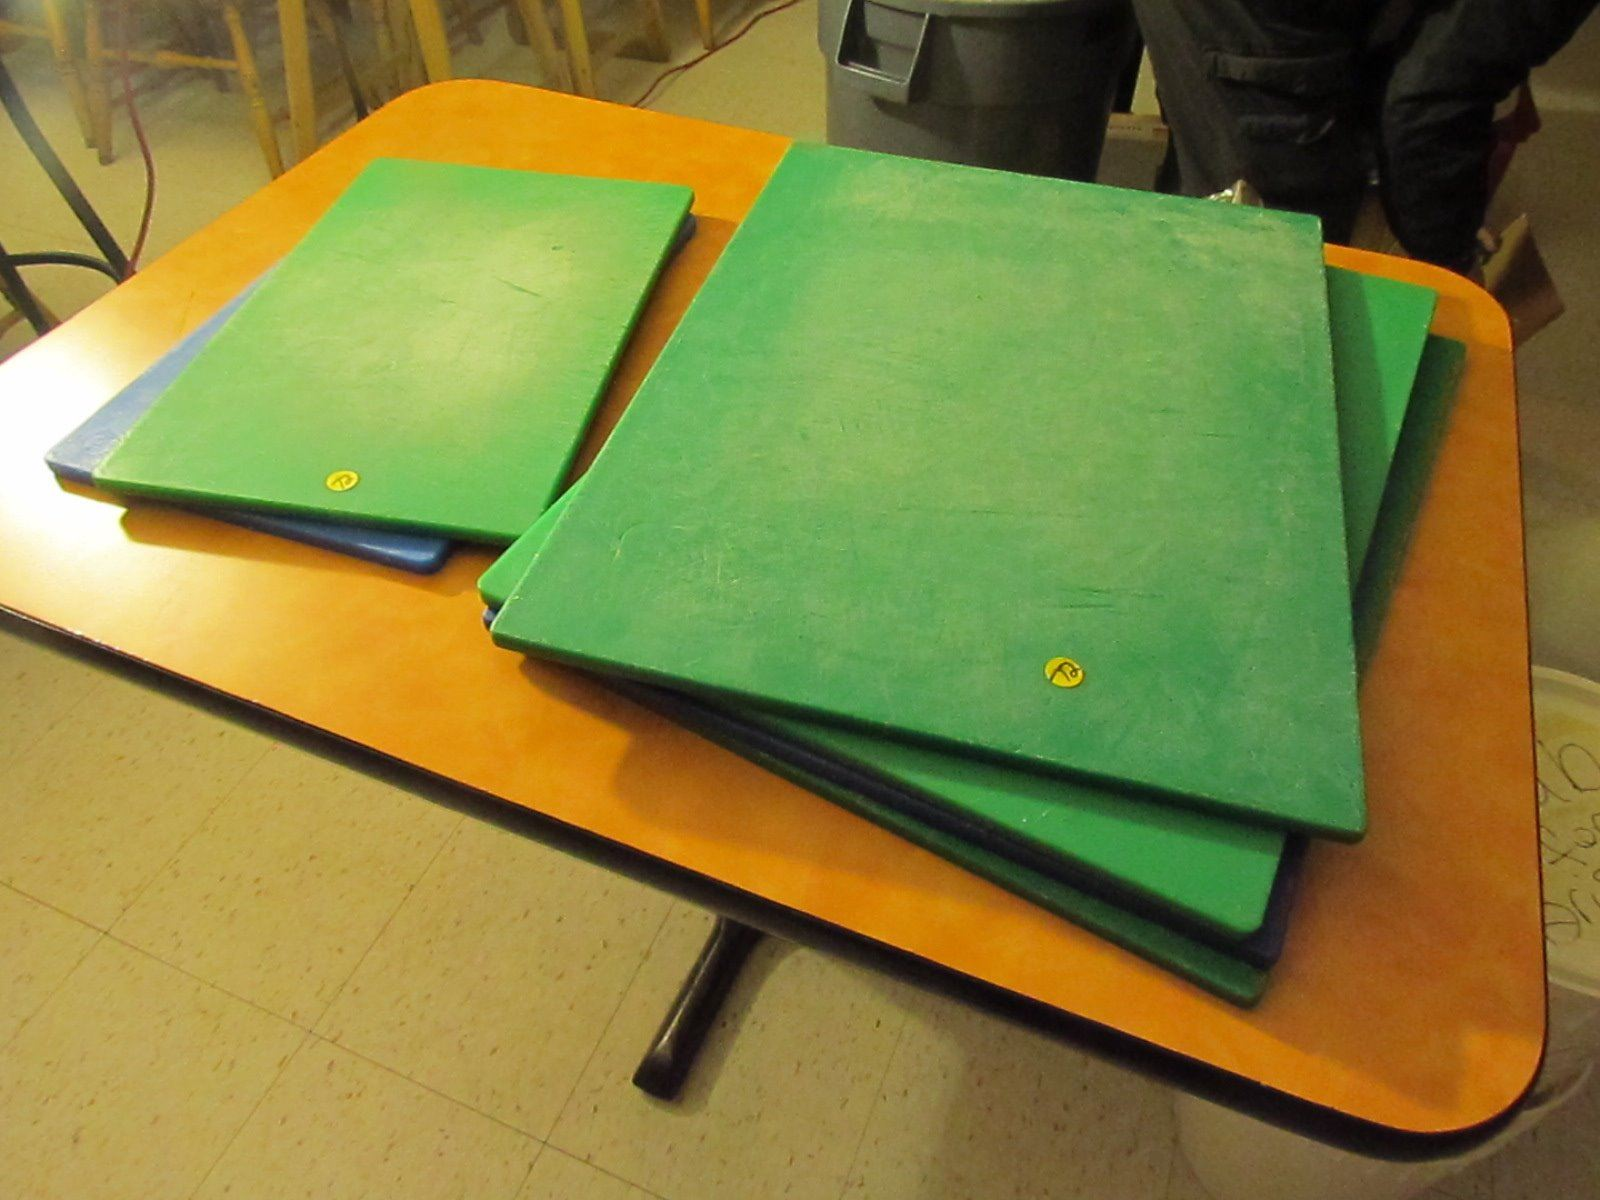 Small Plastic Cutting Boards 4 Large And 2 Small Plastic Cutting Boards Nsf